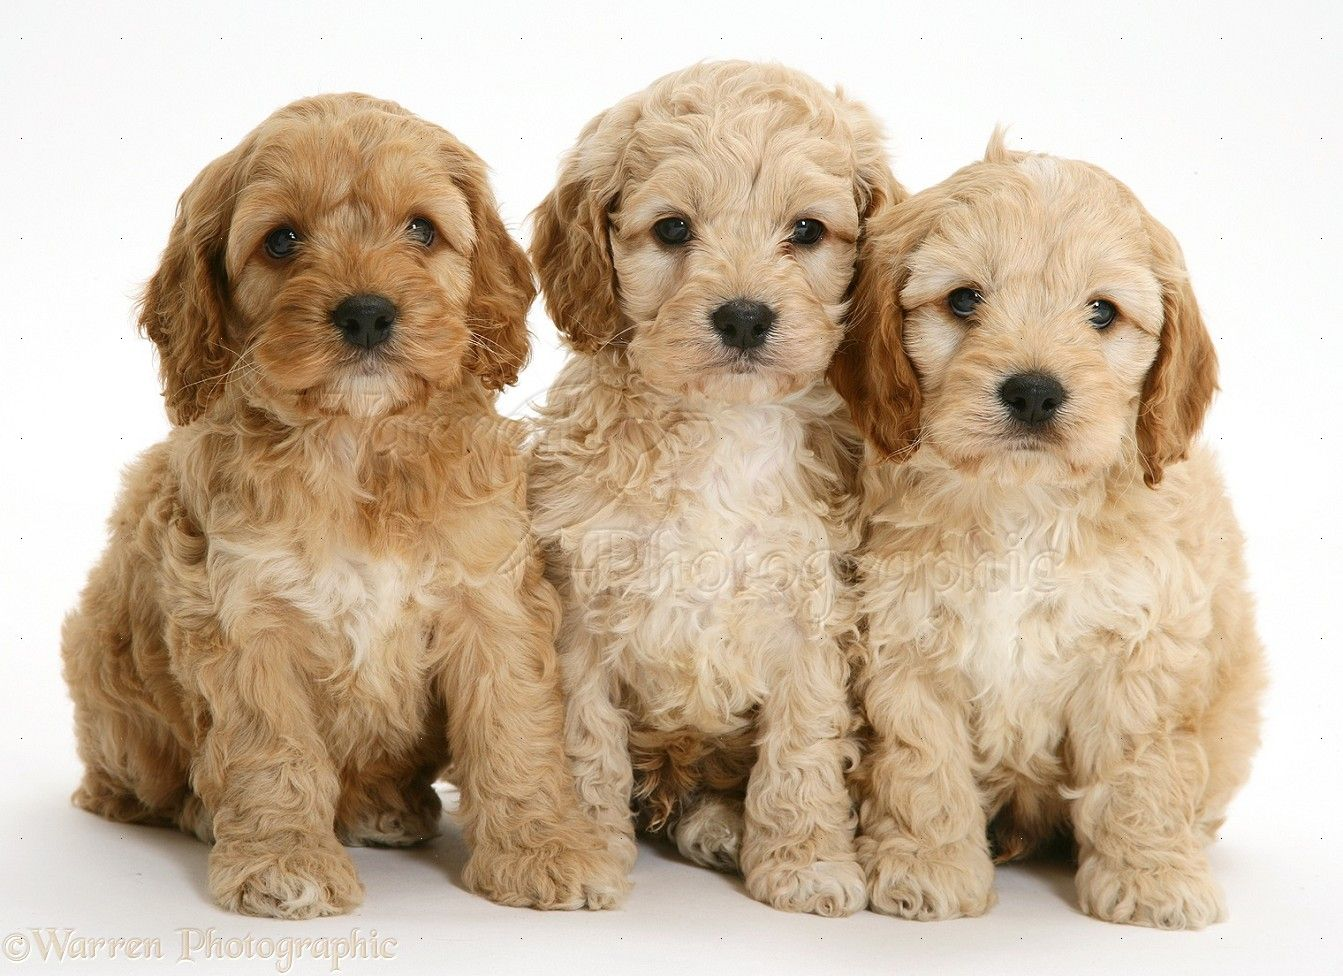 Pin By Nancy Austin On Cockapoo Puppies In 2020 Cockapoo Puppies Cute Dog Wallpaper Cockapoo